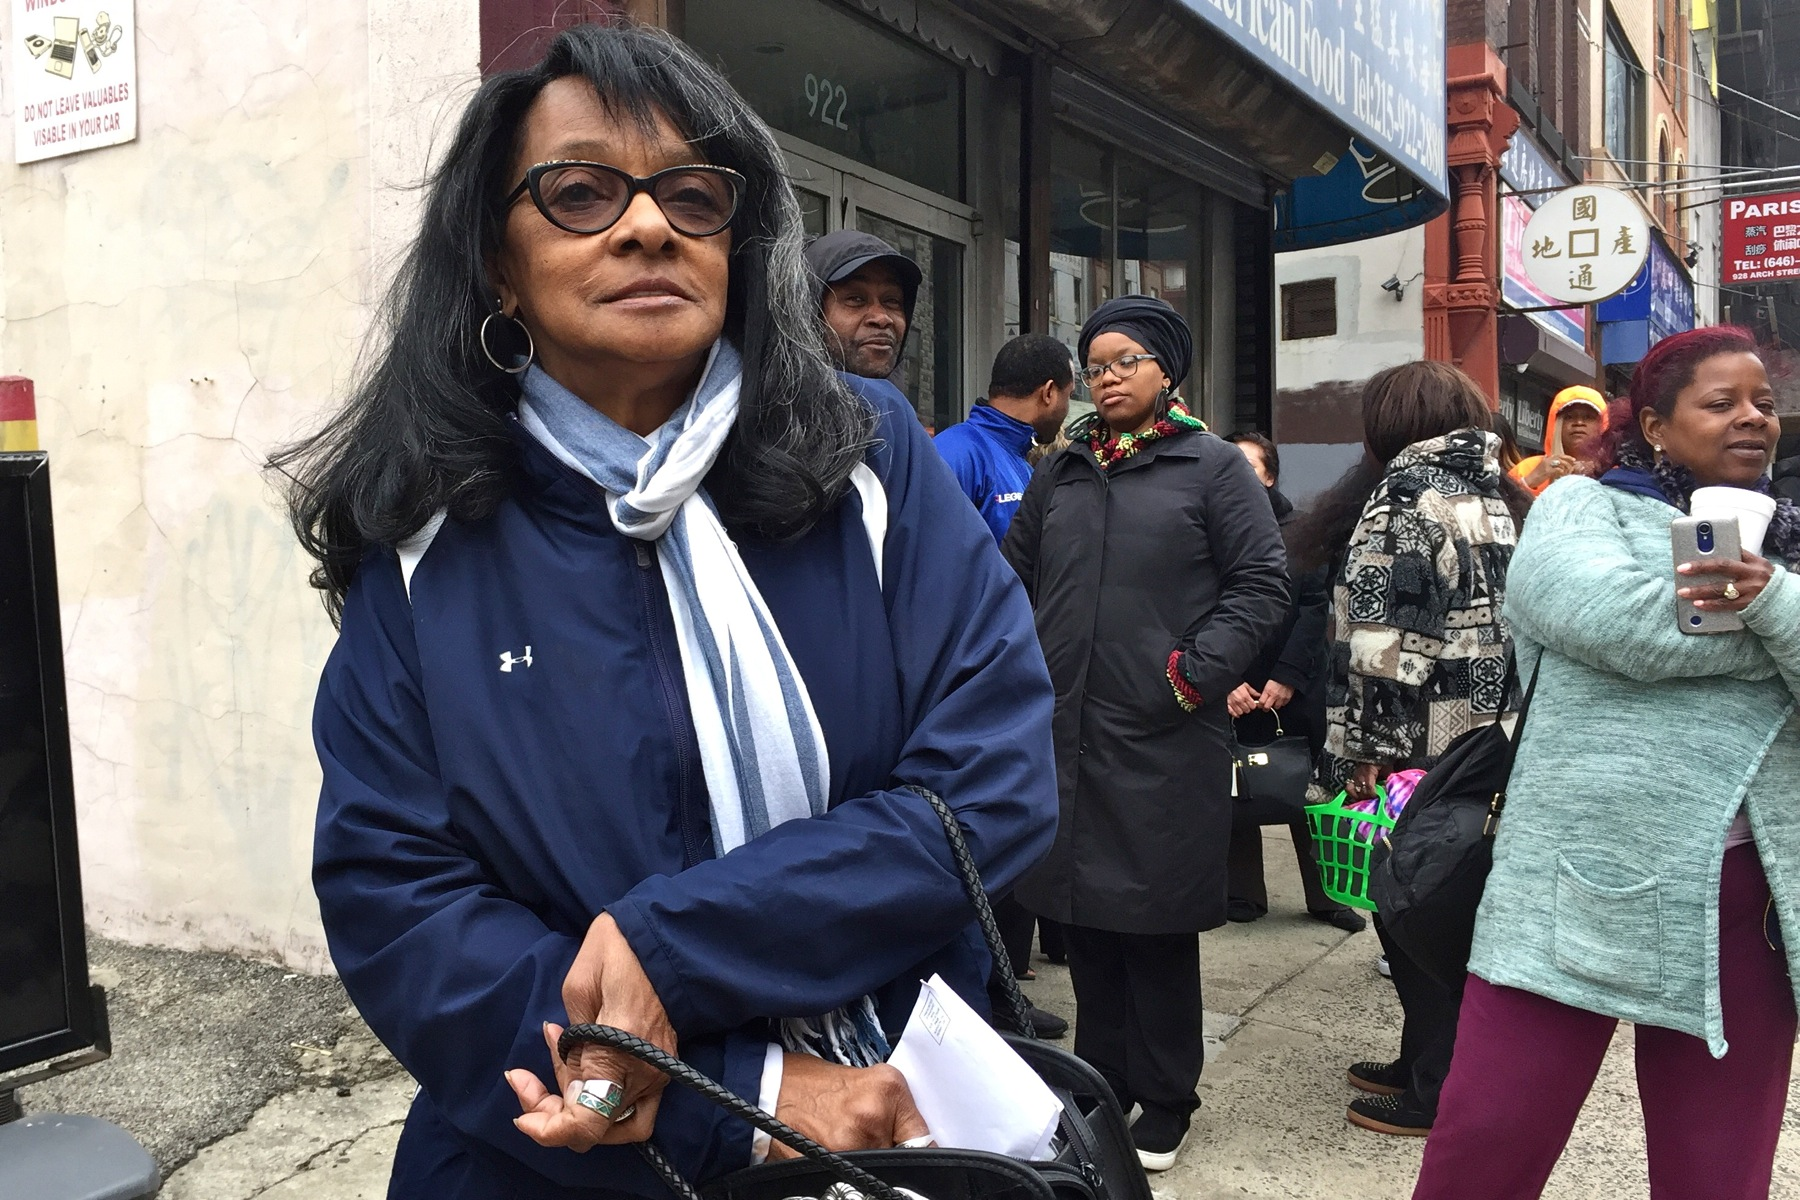 Joy Lipscomb waits in line to pay her parking tickets on the last day of amnesty.